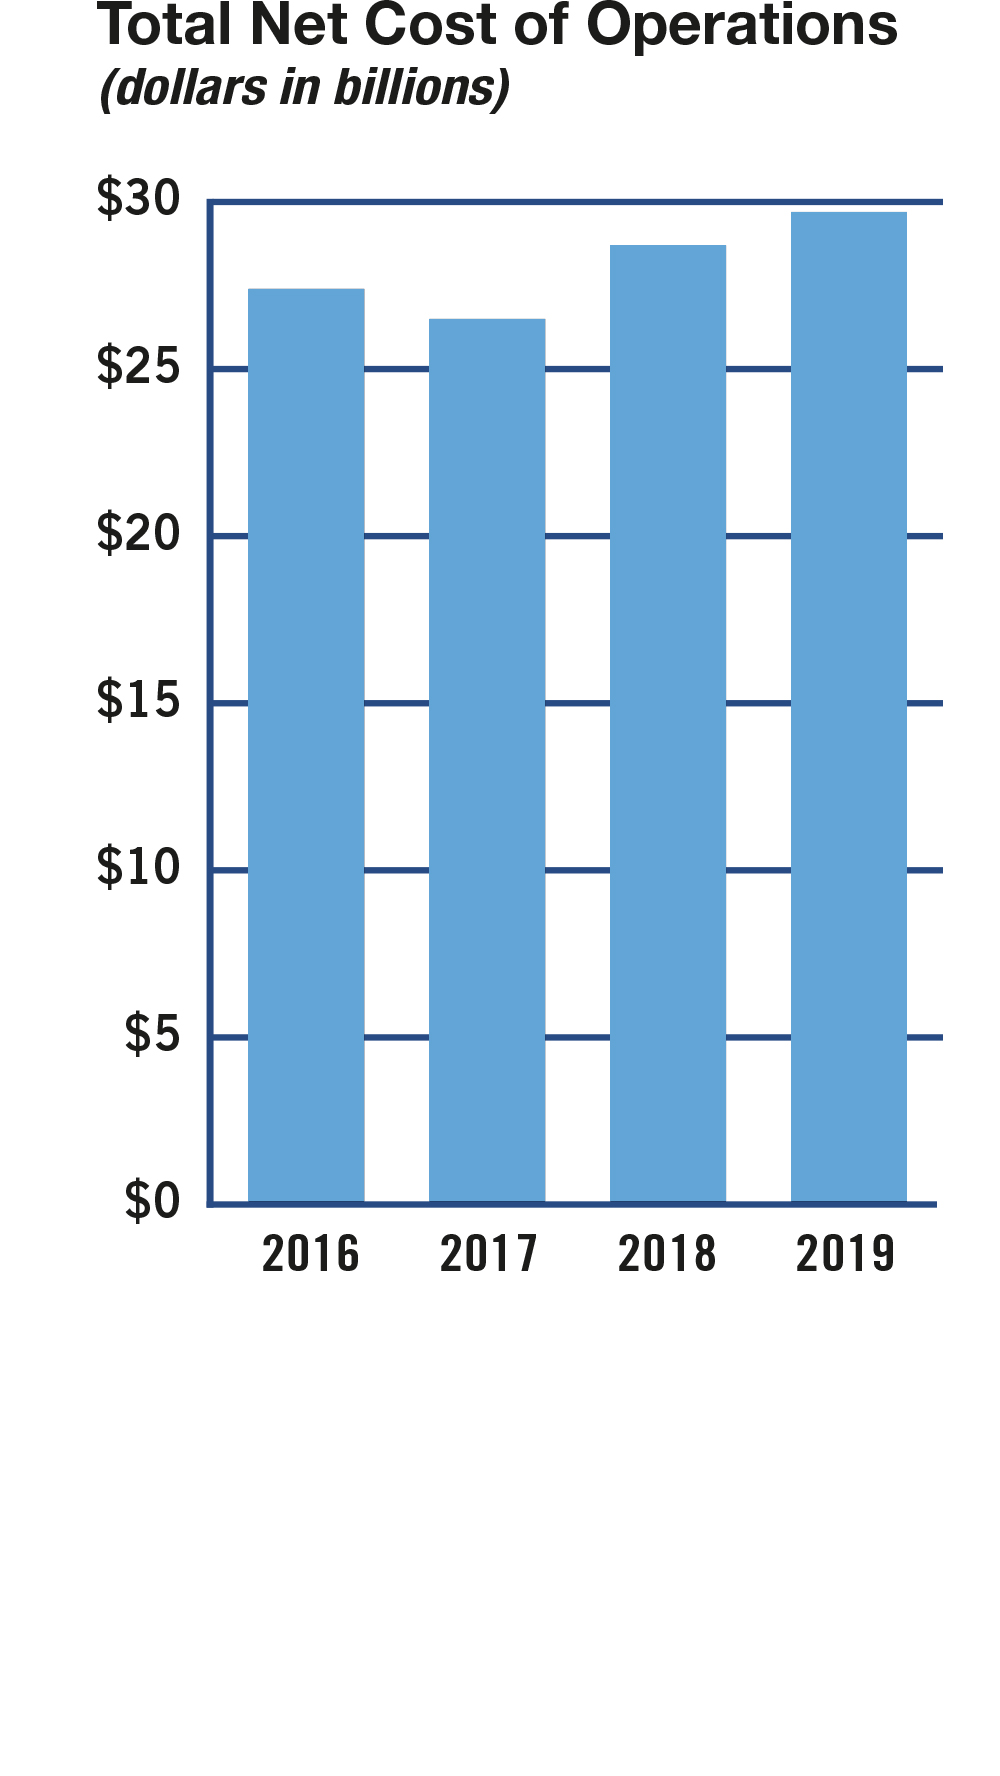 Bar chart summarizing the total net cost of operations for fiscal years 2016 to 2019. Values are as follows: FY 2016: $27.4 billion. FY 2017: $26.5 billion. FY 2018: $28.7 billion. FY 2019: $29.7 billion.